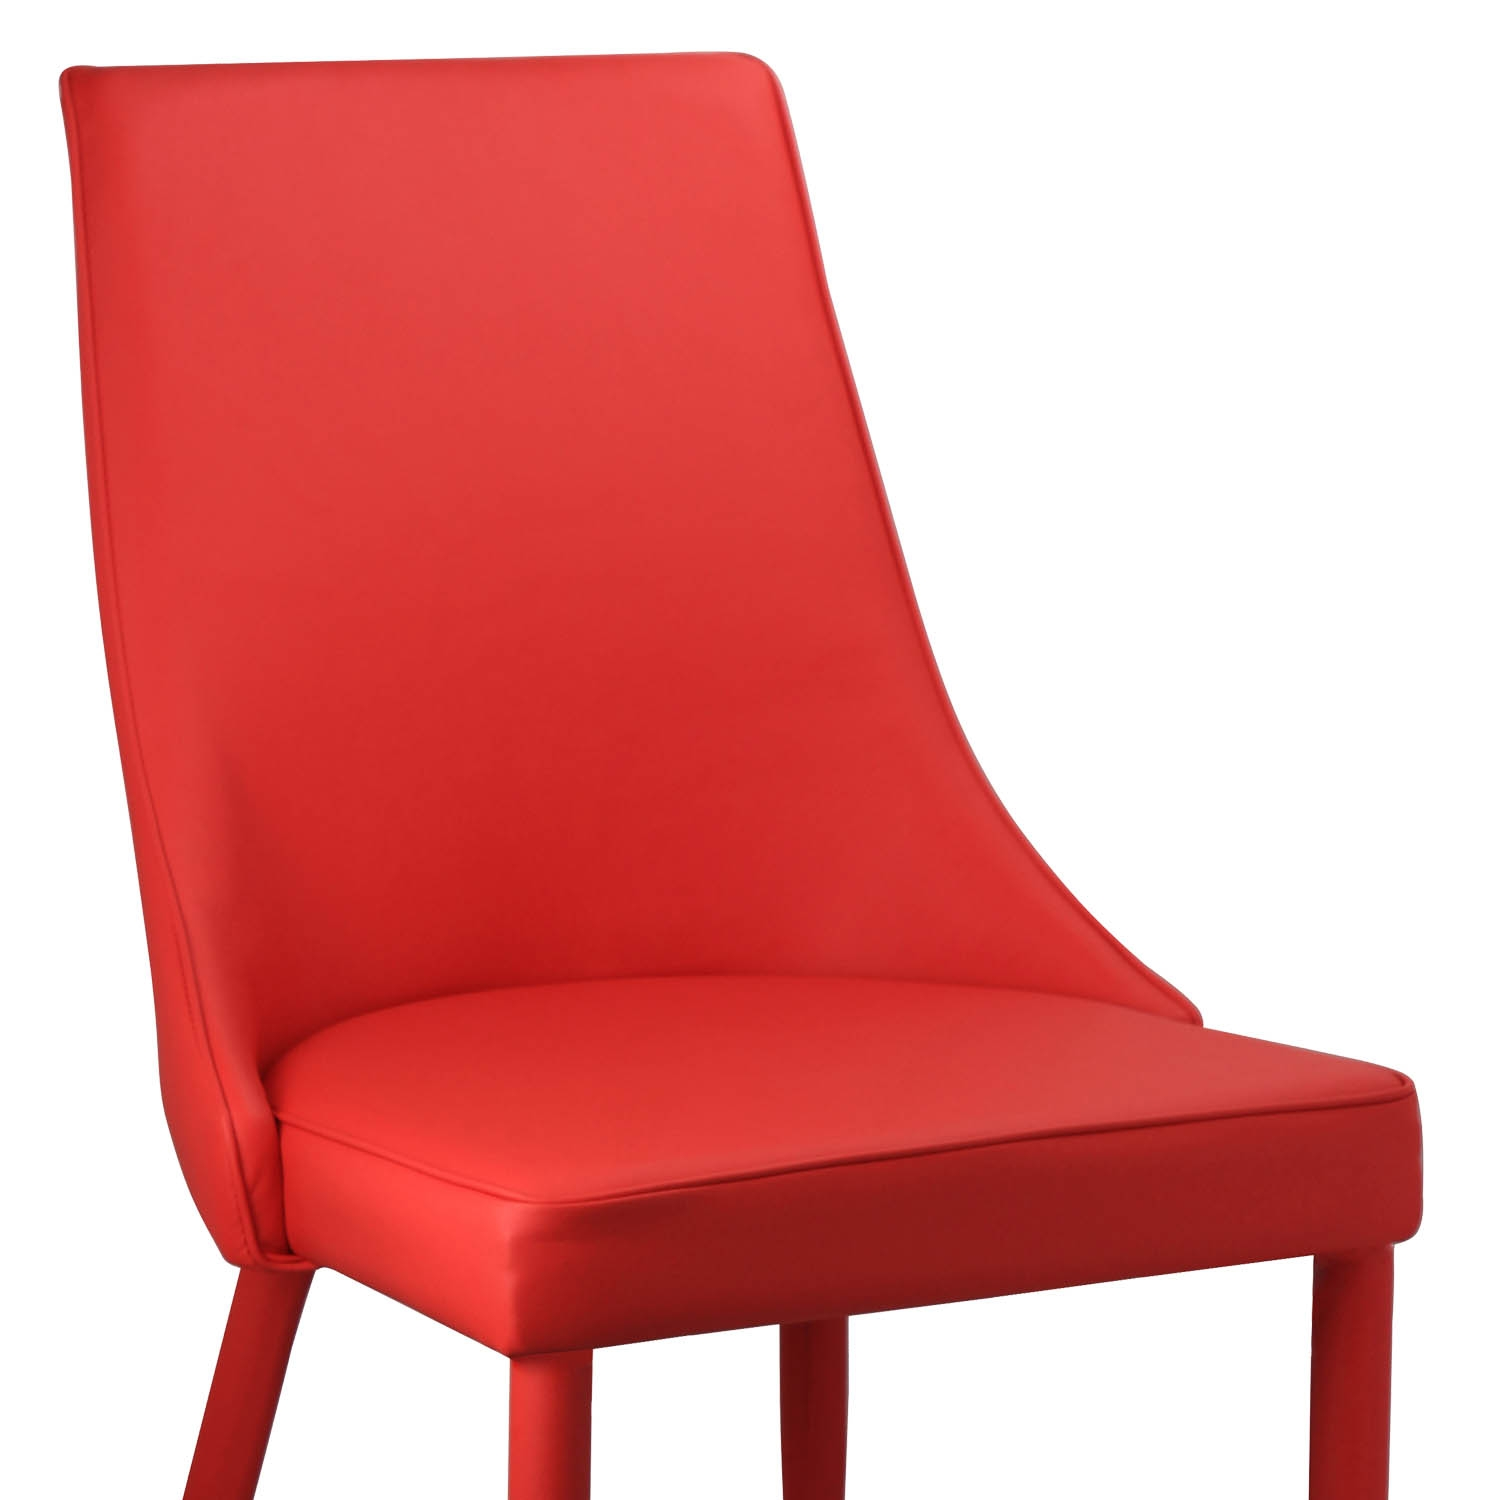 Deco in paris lot de 4 chaises rouge avev avev rouge x4 for Chaise rouge